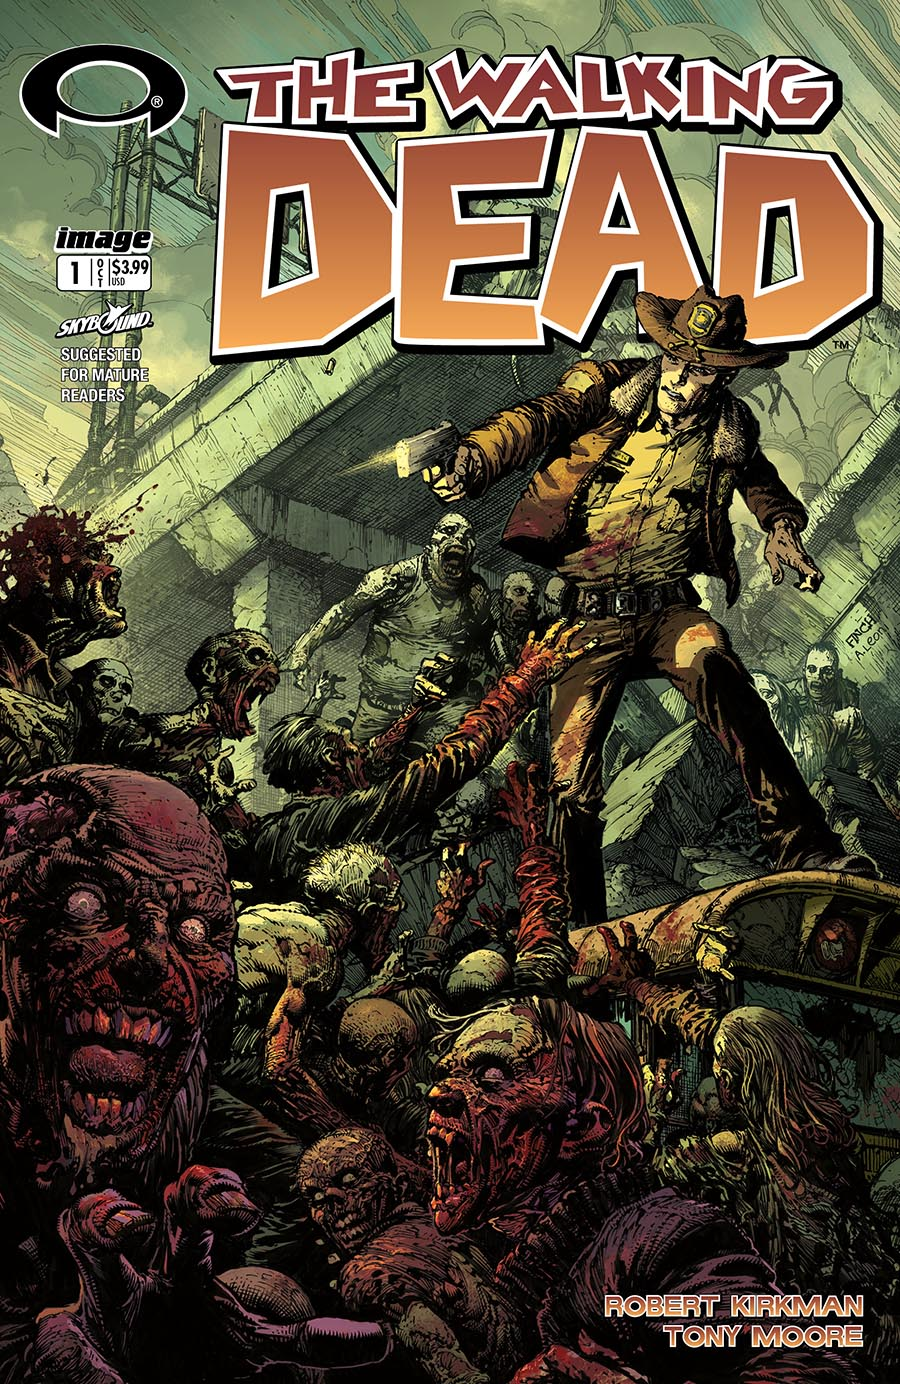 Artist: David Finch Debut Issue first released in 2003